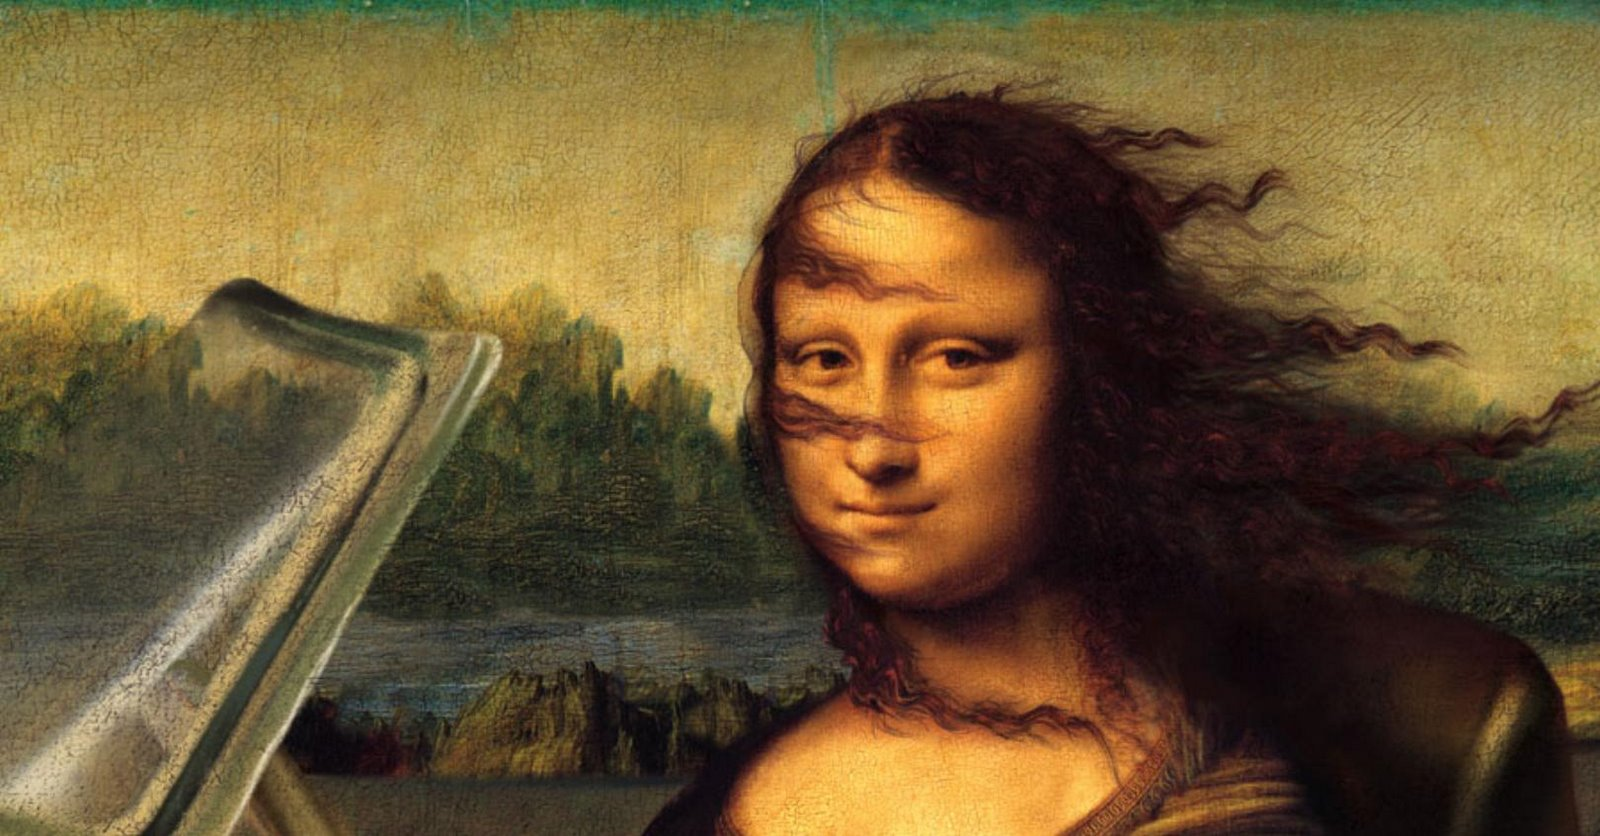 Download Mona Lisa Wallpaper 1600x836 Wallpoper 366889 1600x836